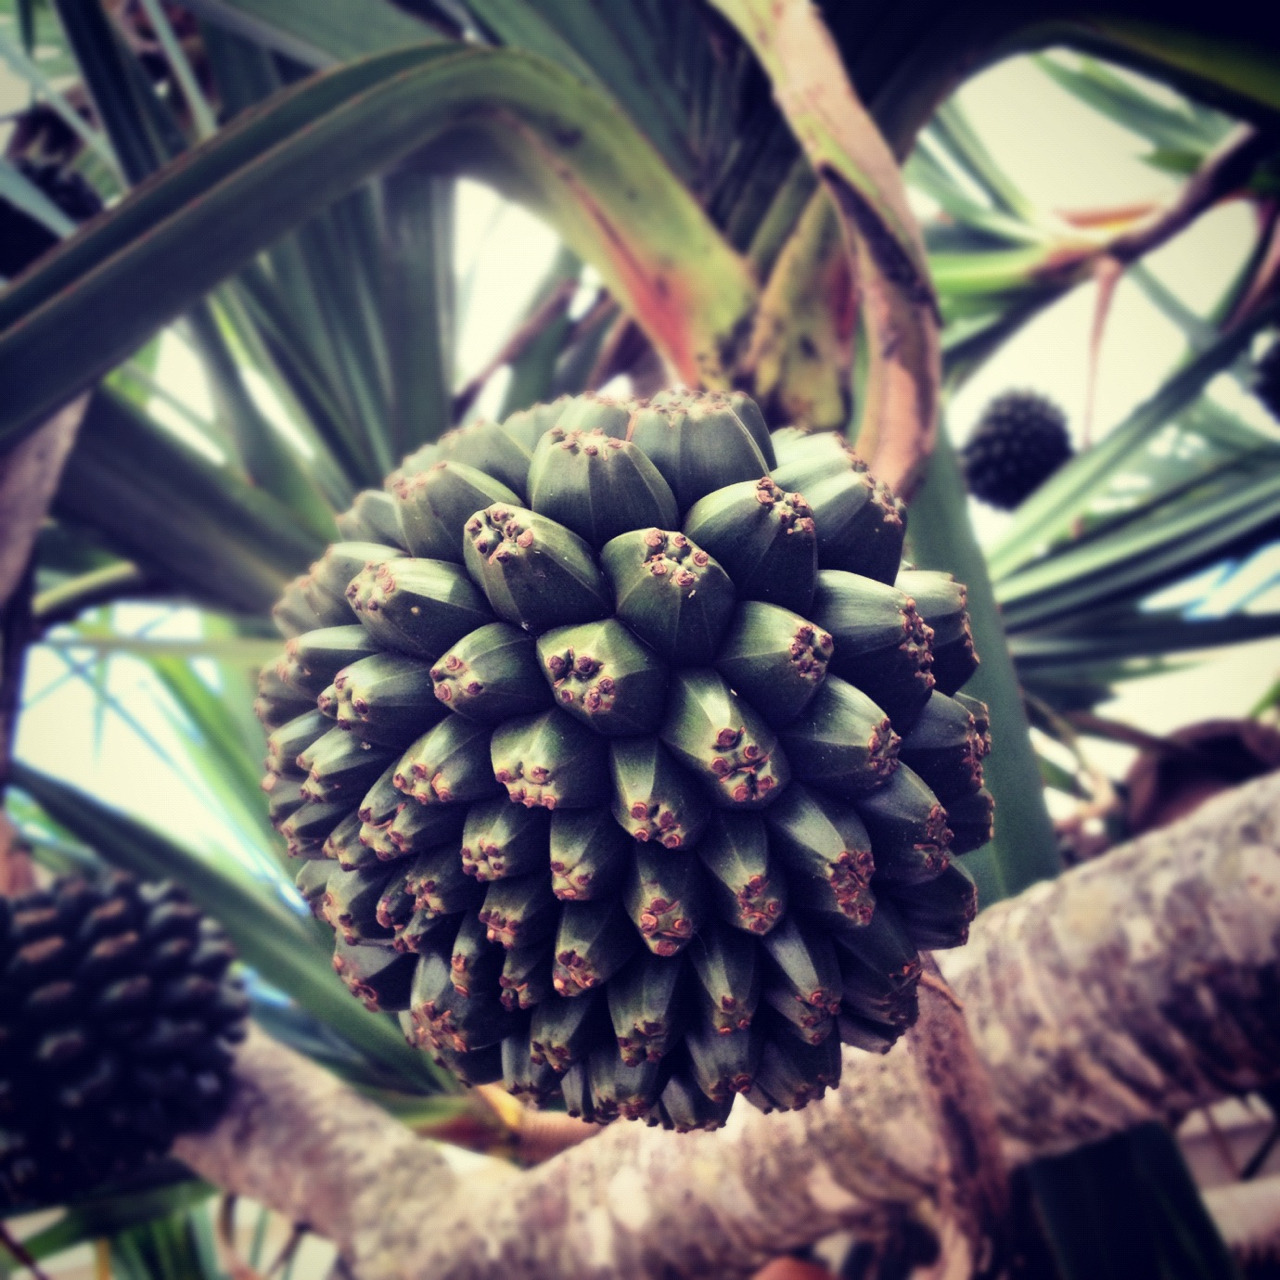 Stumbled upon this great Palm today.